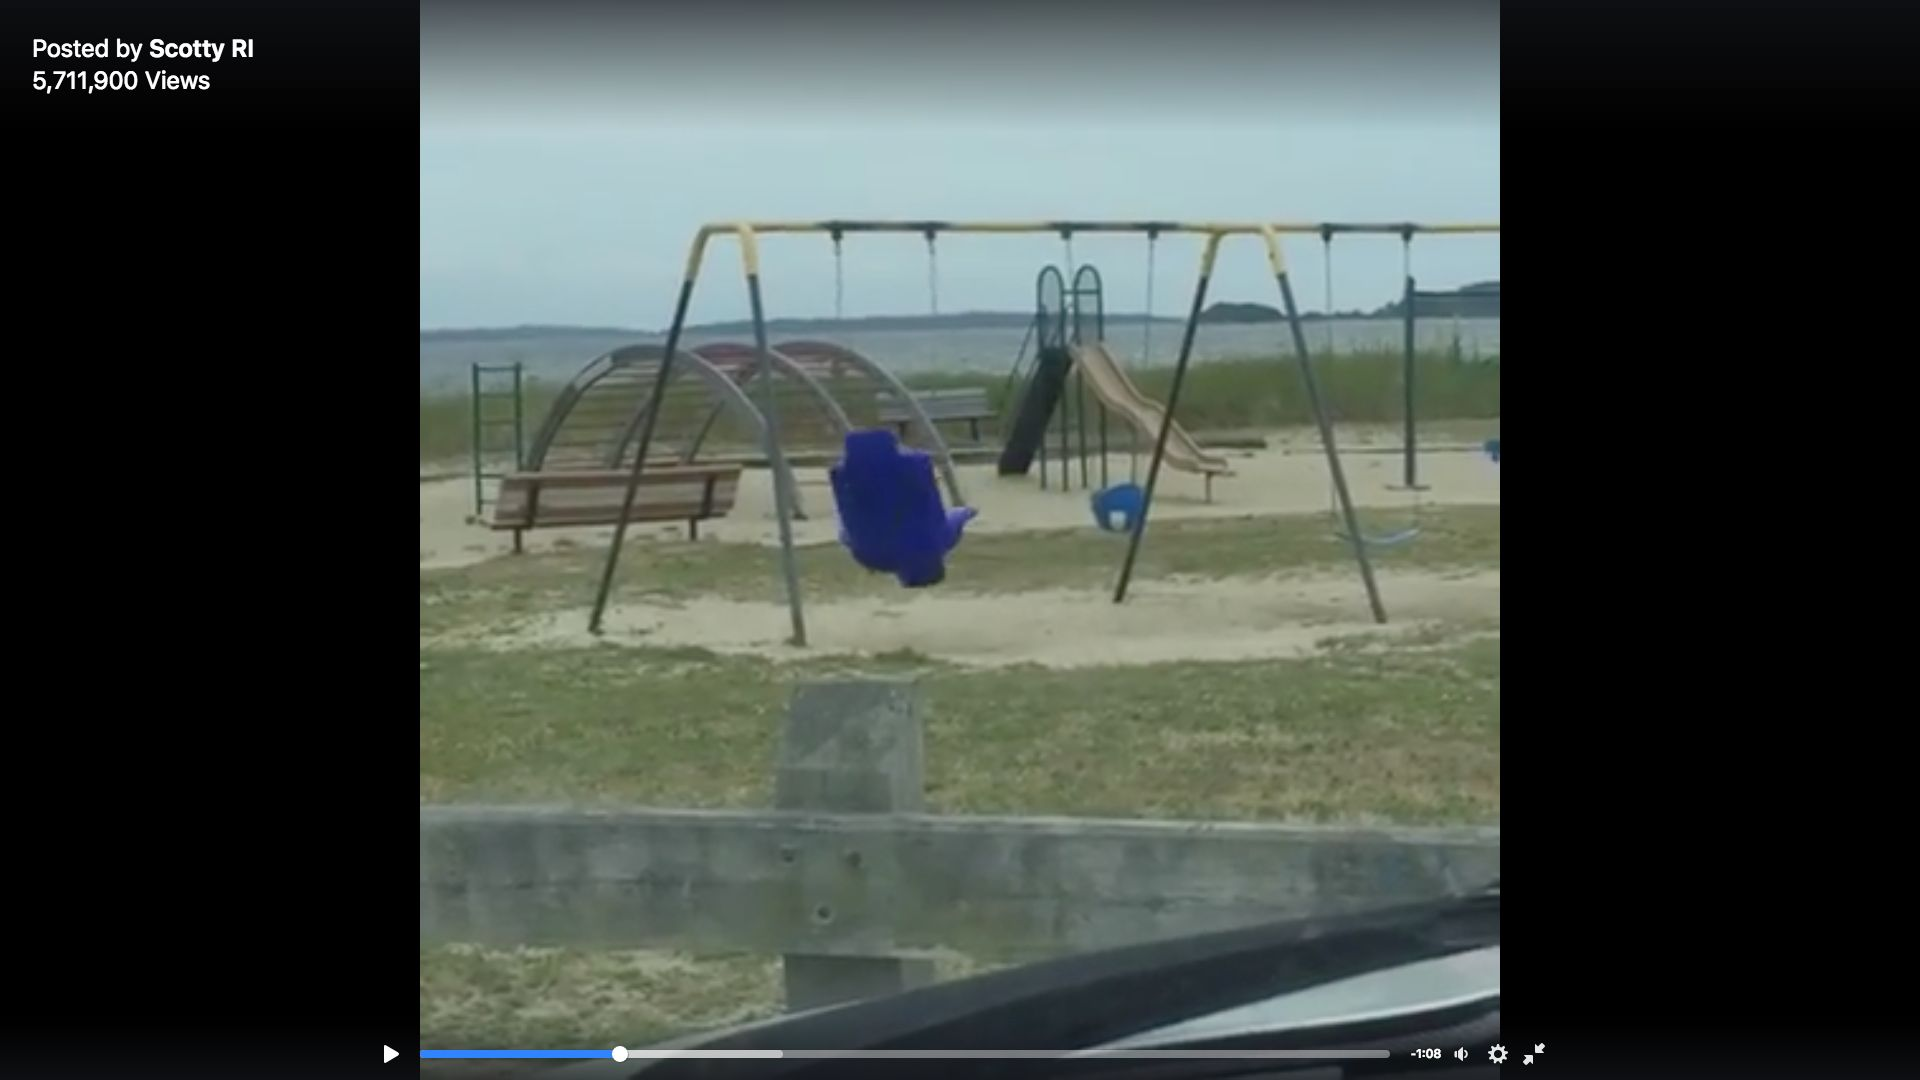 A viral video shows a single swing being tossed around at a Rhode Island park, leading some to suggest that it's the work of a ghost.